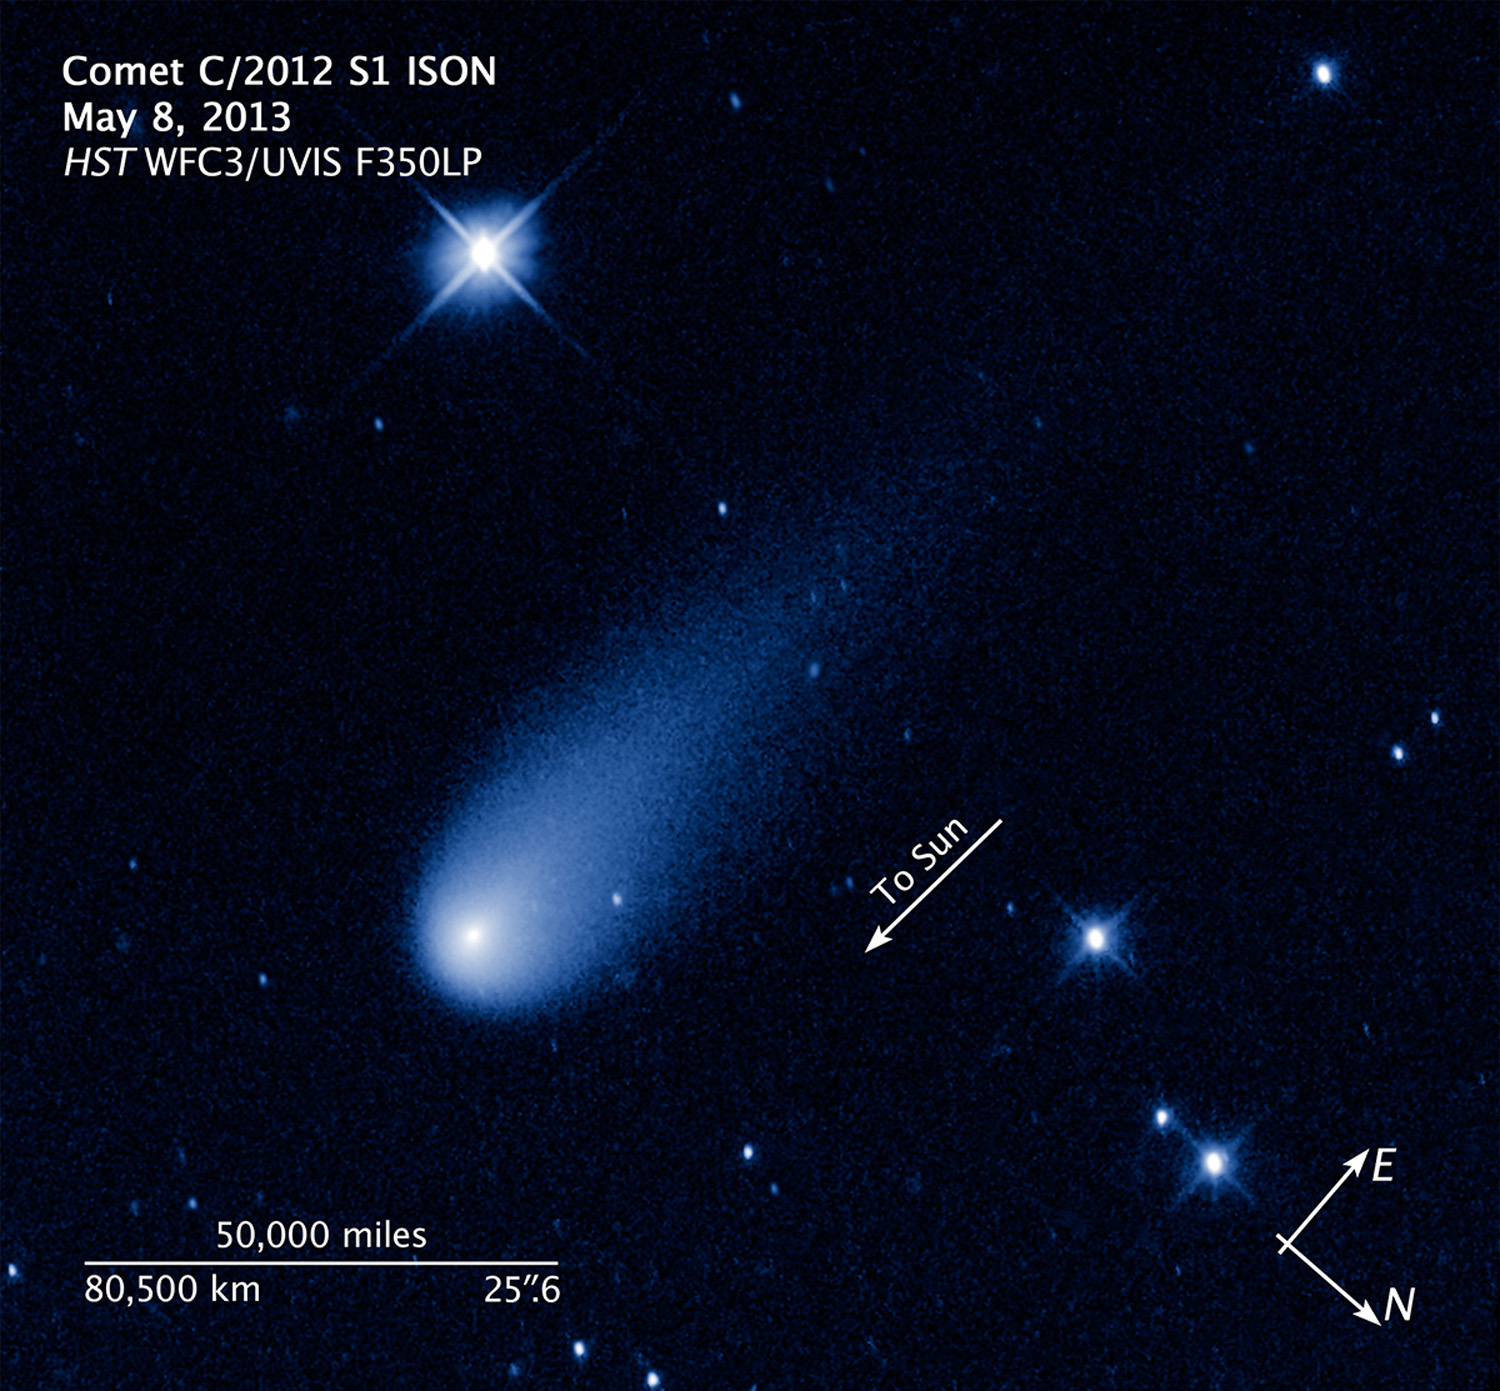 Comet ISON: A Timeline of This Year's Sungrazing Spectacle